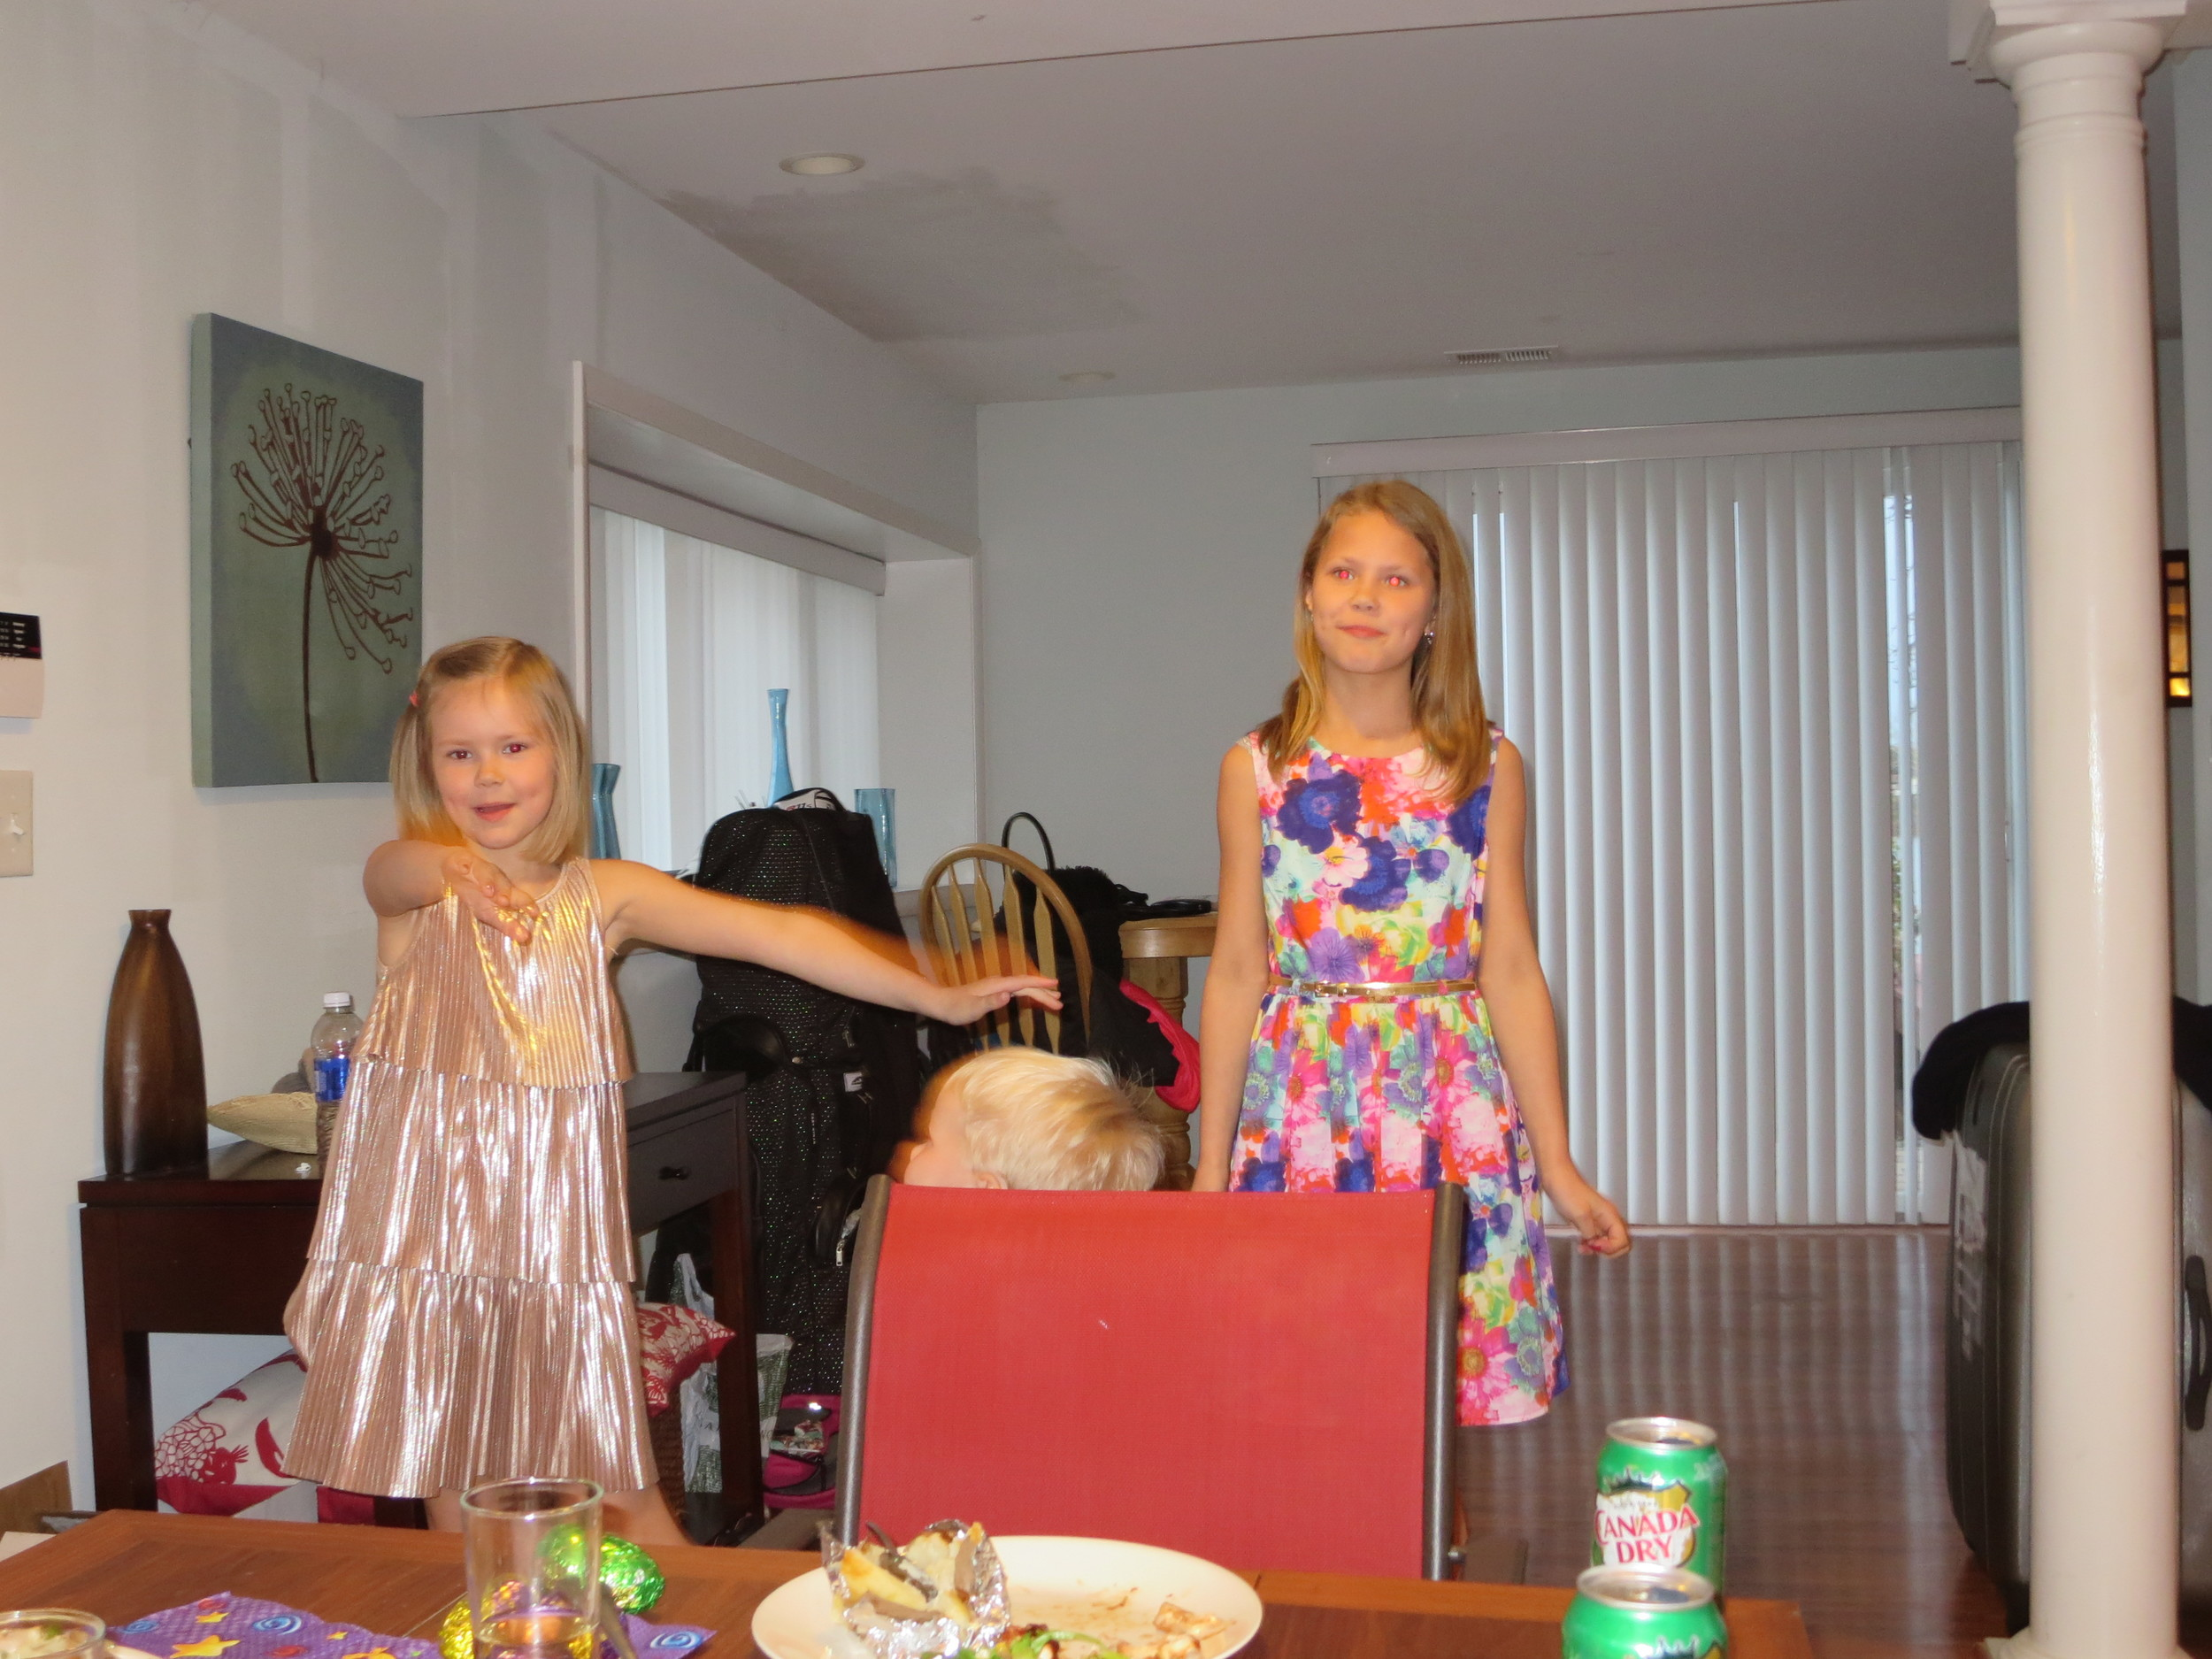 Klara and Kristjana had prepared songs for their grandfather - really well done!